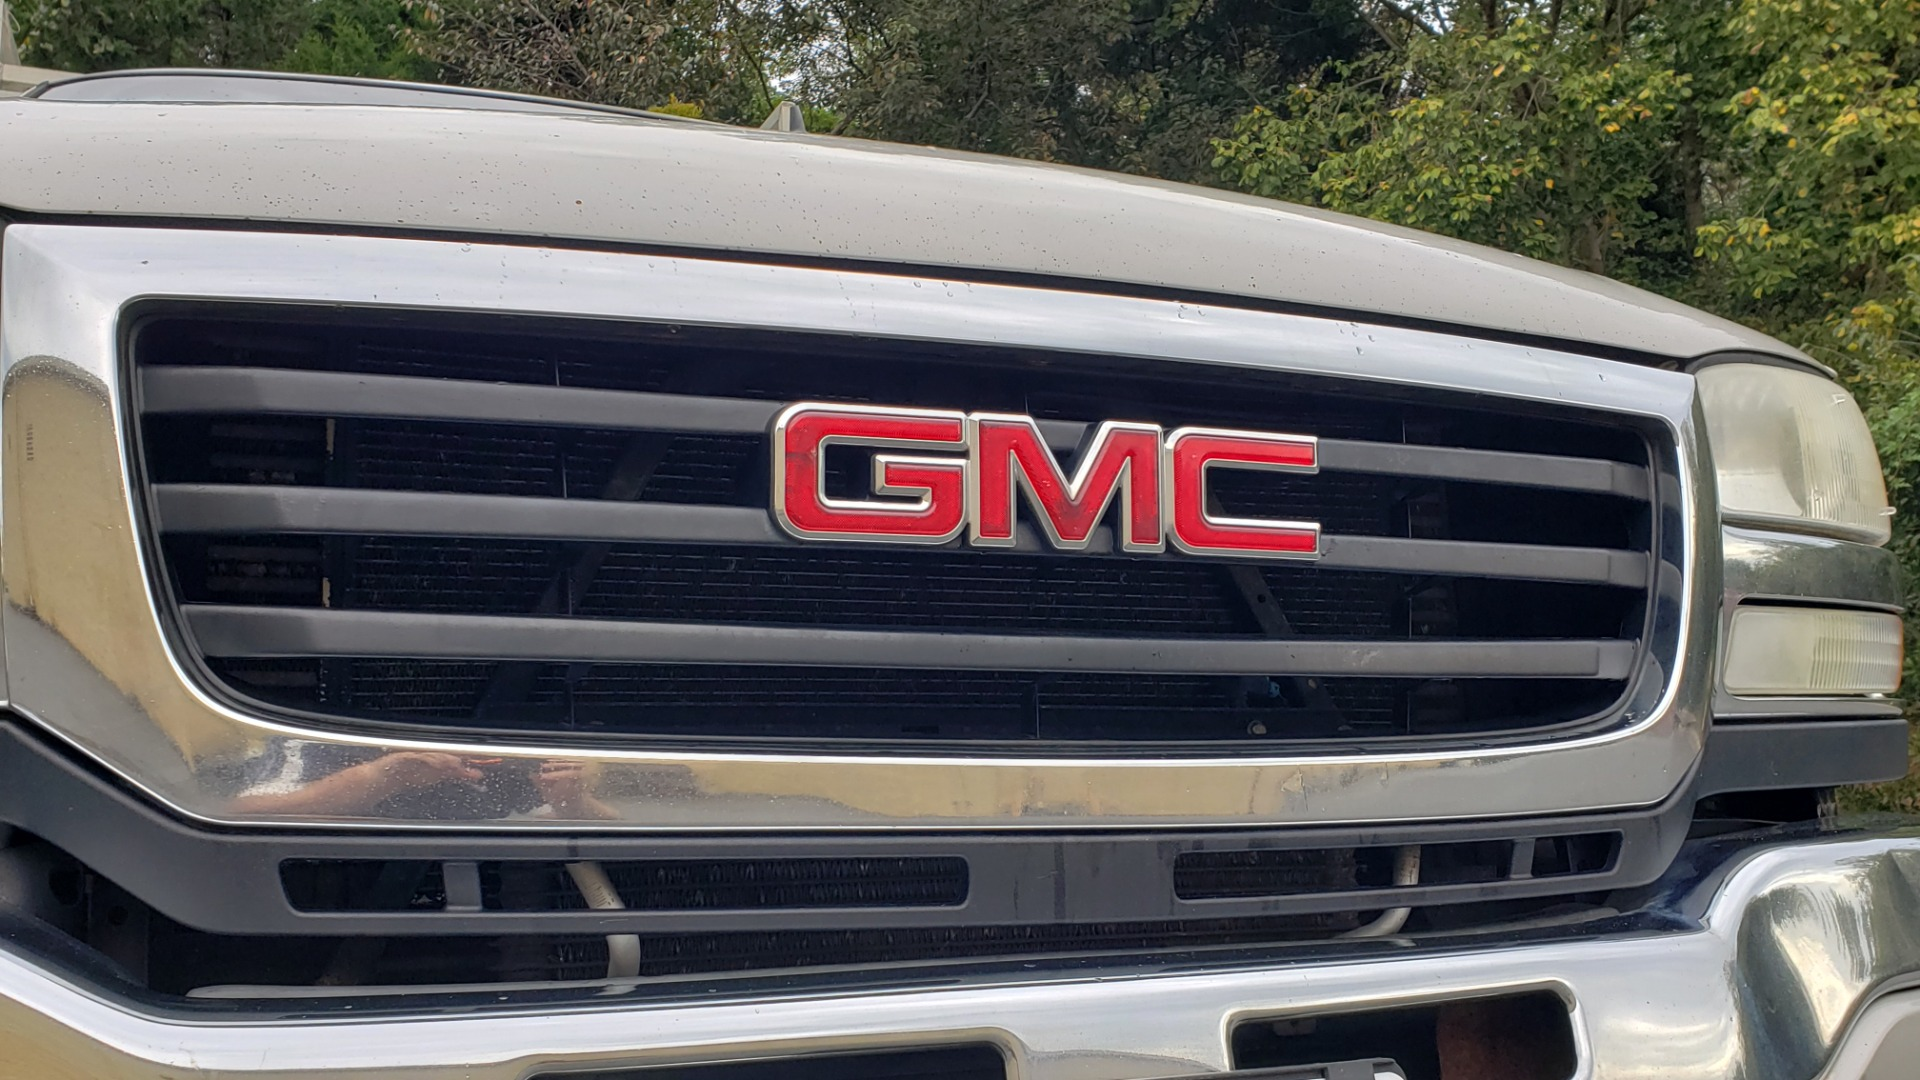 Used 2007 GMC SIERRA 2500HD CLASSIC SLT 4WD / 167WB / 6.6L DURAMAX / DOOMSDAY PREPPER for sale $13,999 at Formula Imports in Charlotte NC 28227 61